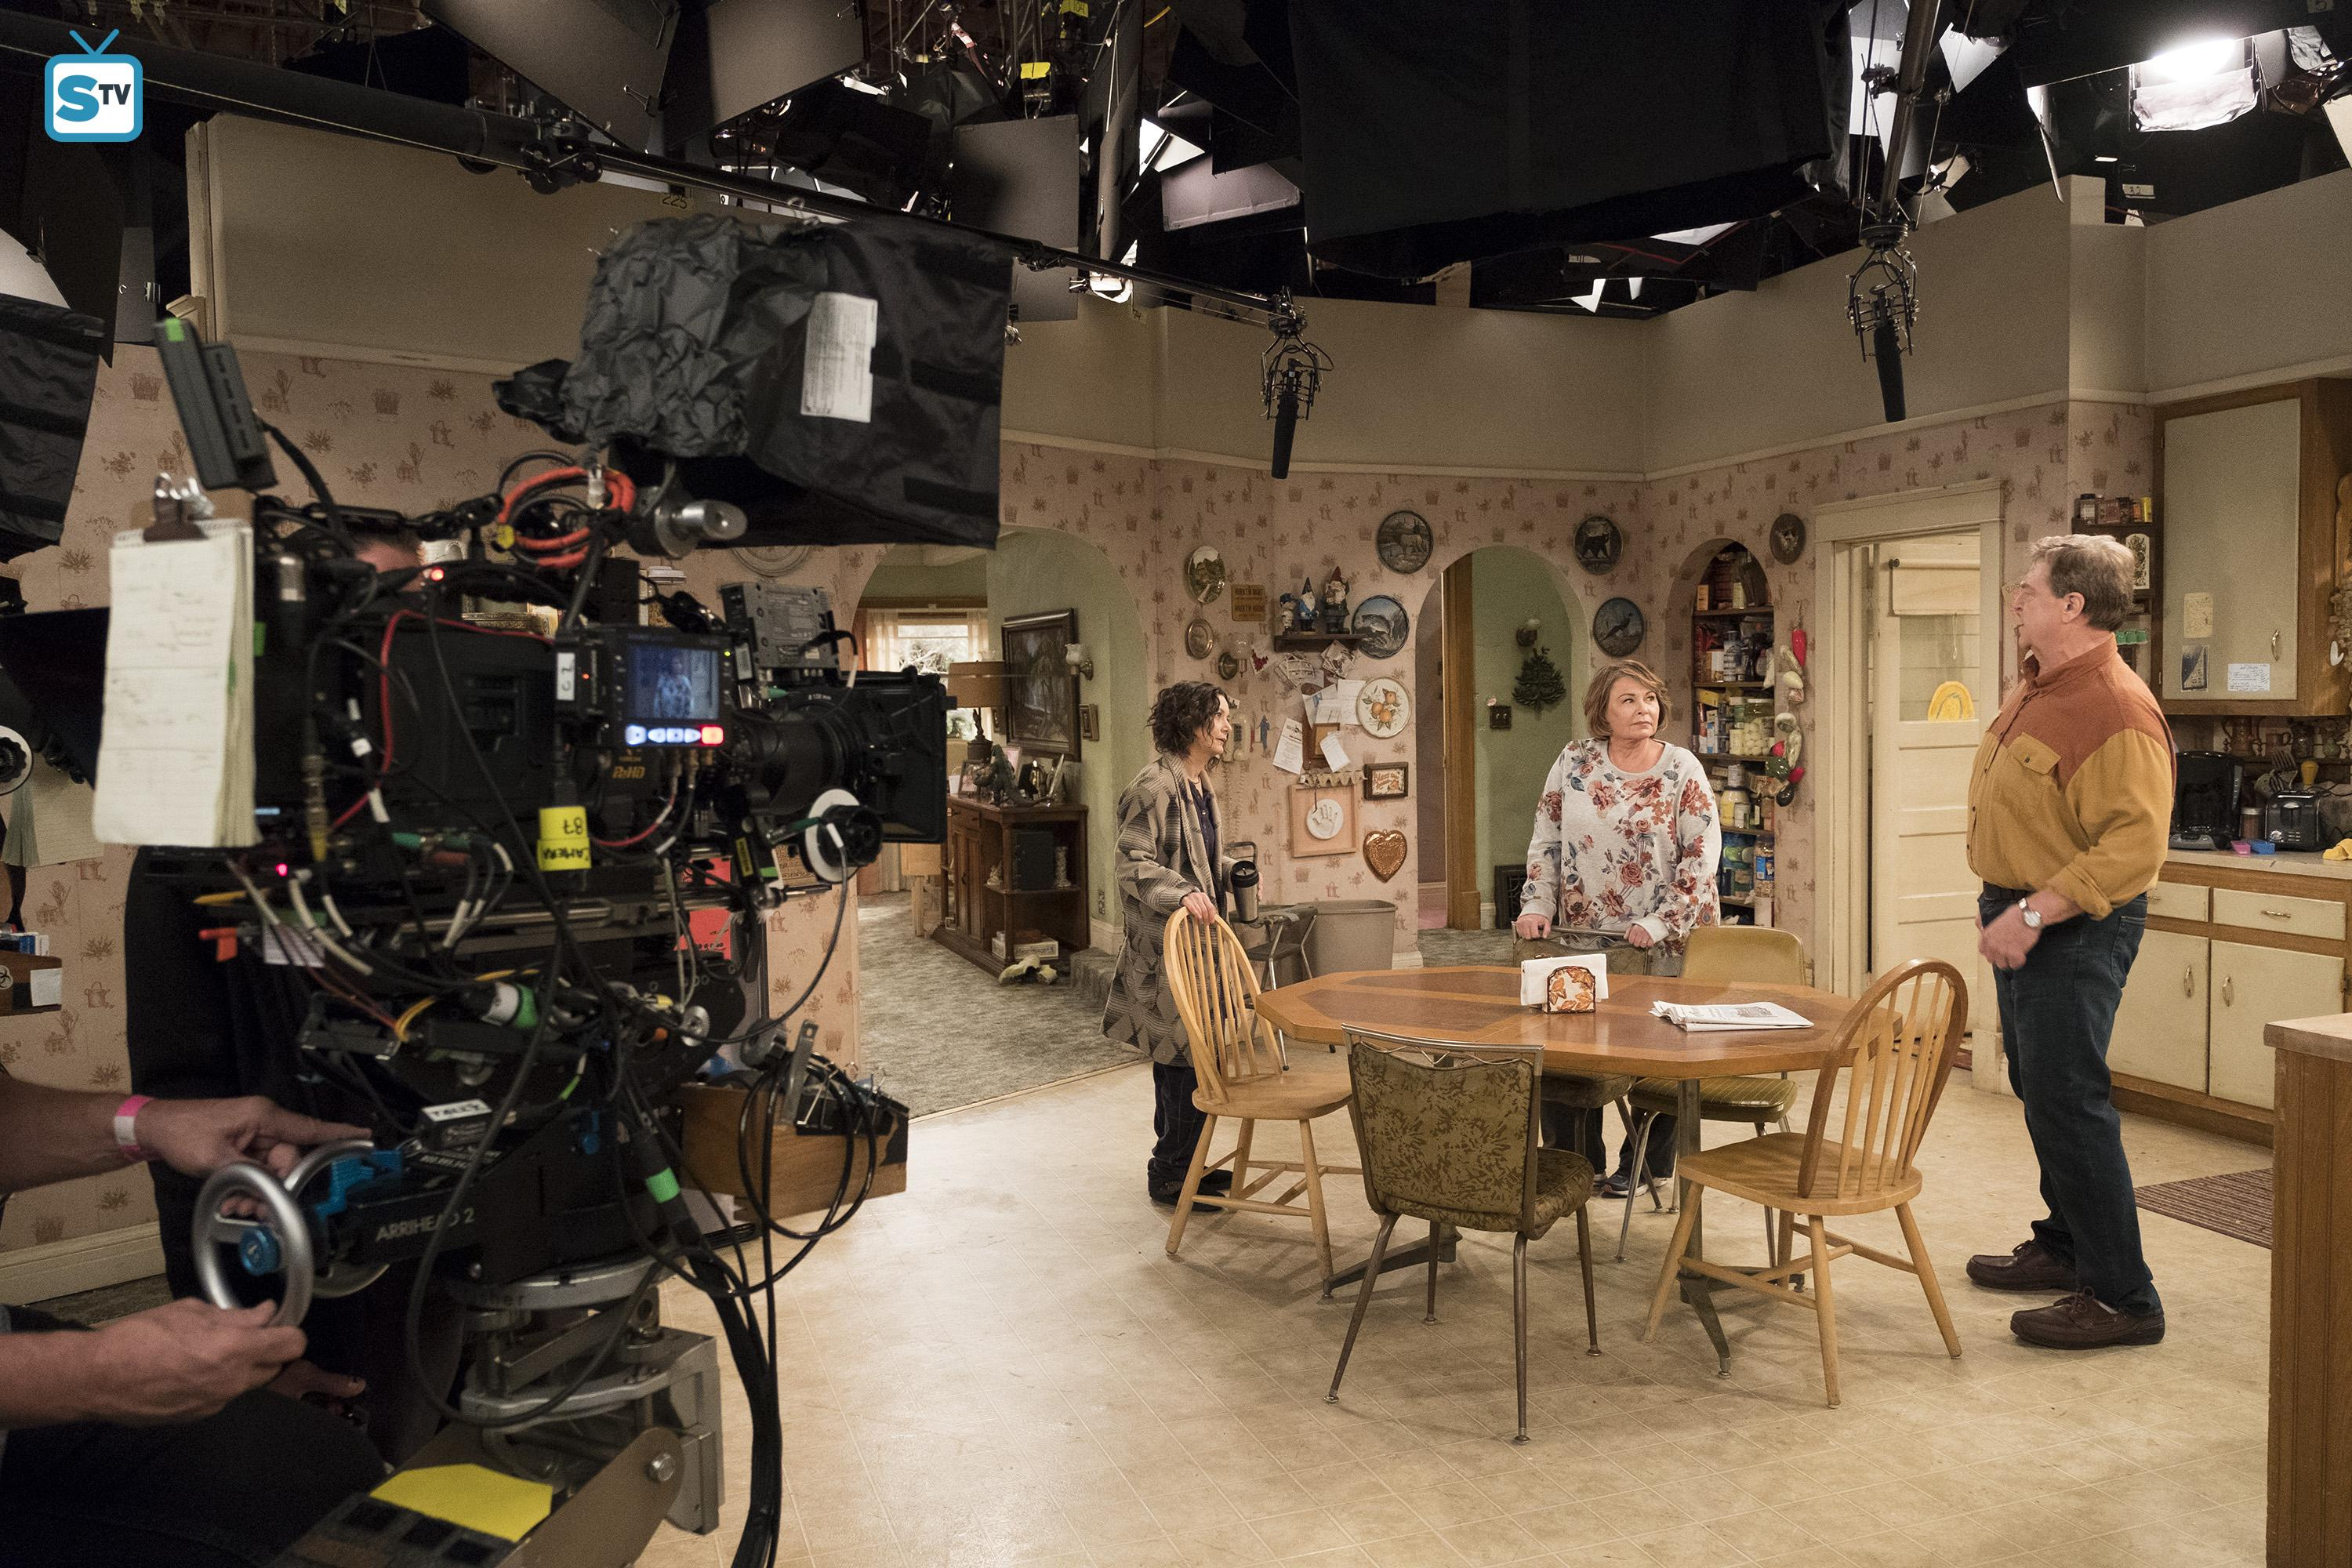 10x03 - Roseanne Gets the Chair - Behind the Scenes